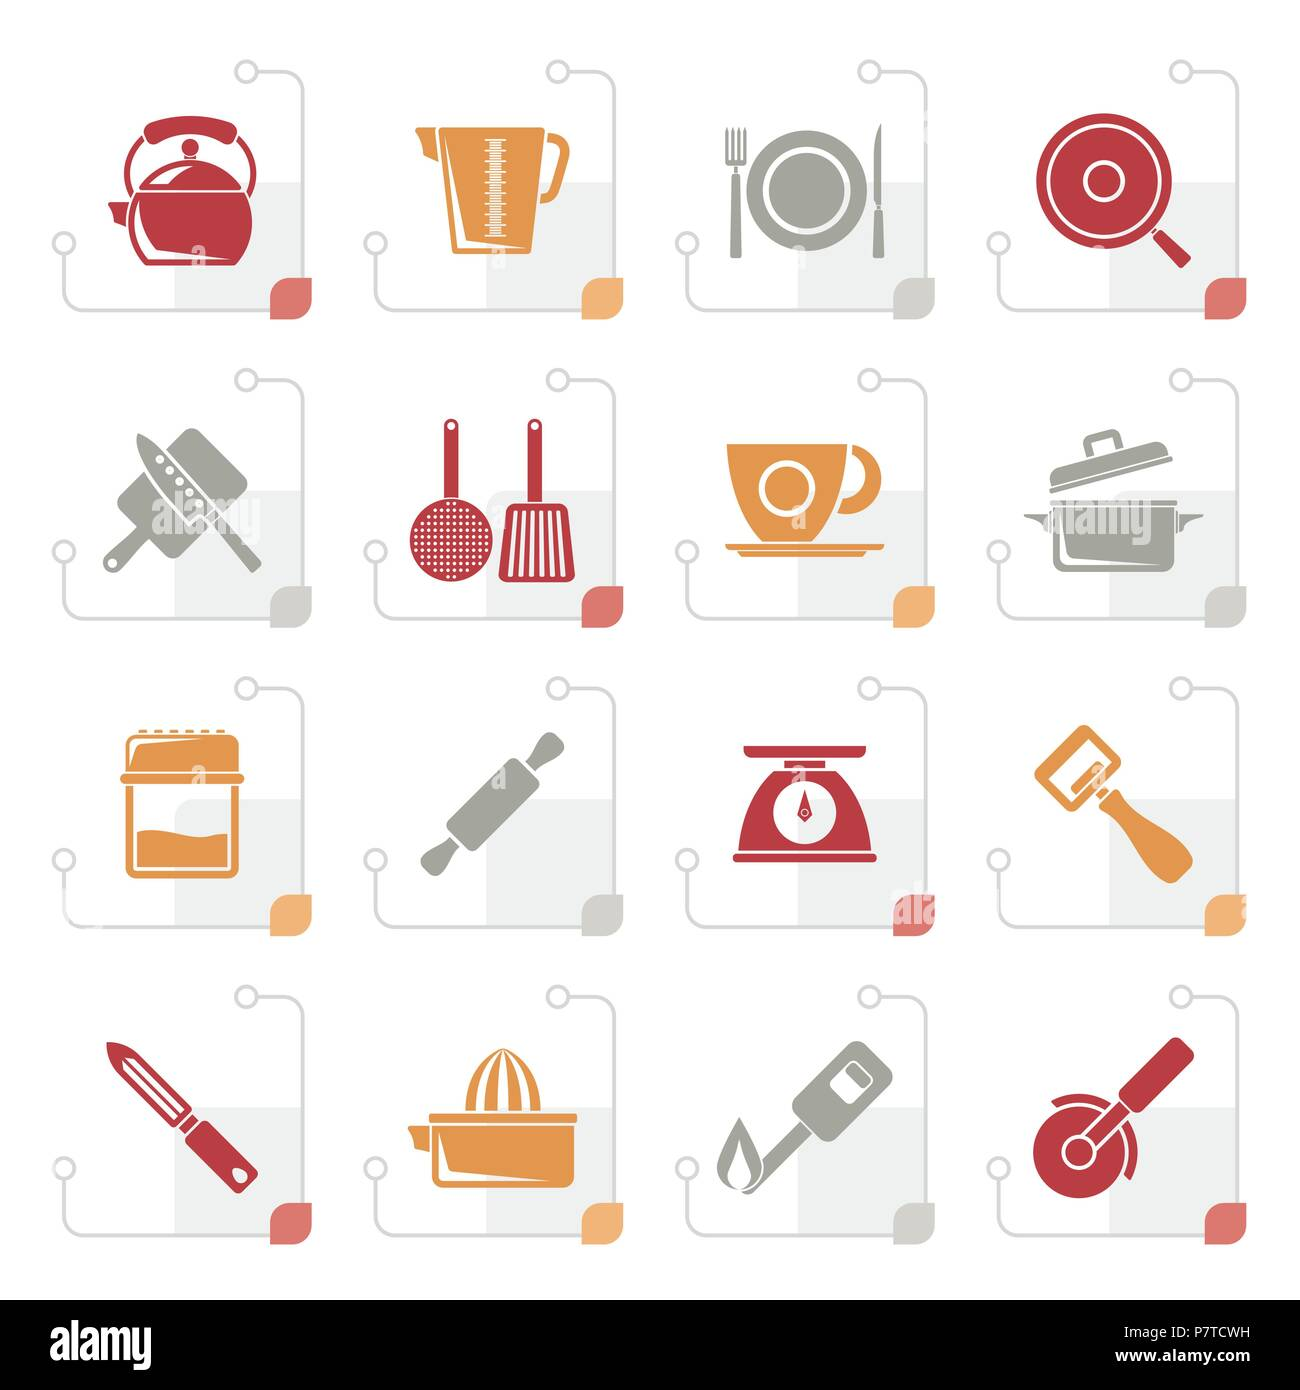 Stylized kitchen gadgets and equipment icons - vector icon set - Stock Image